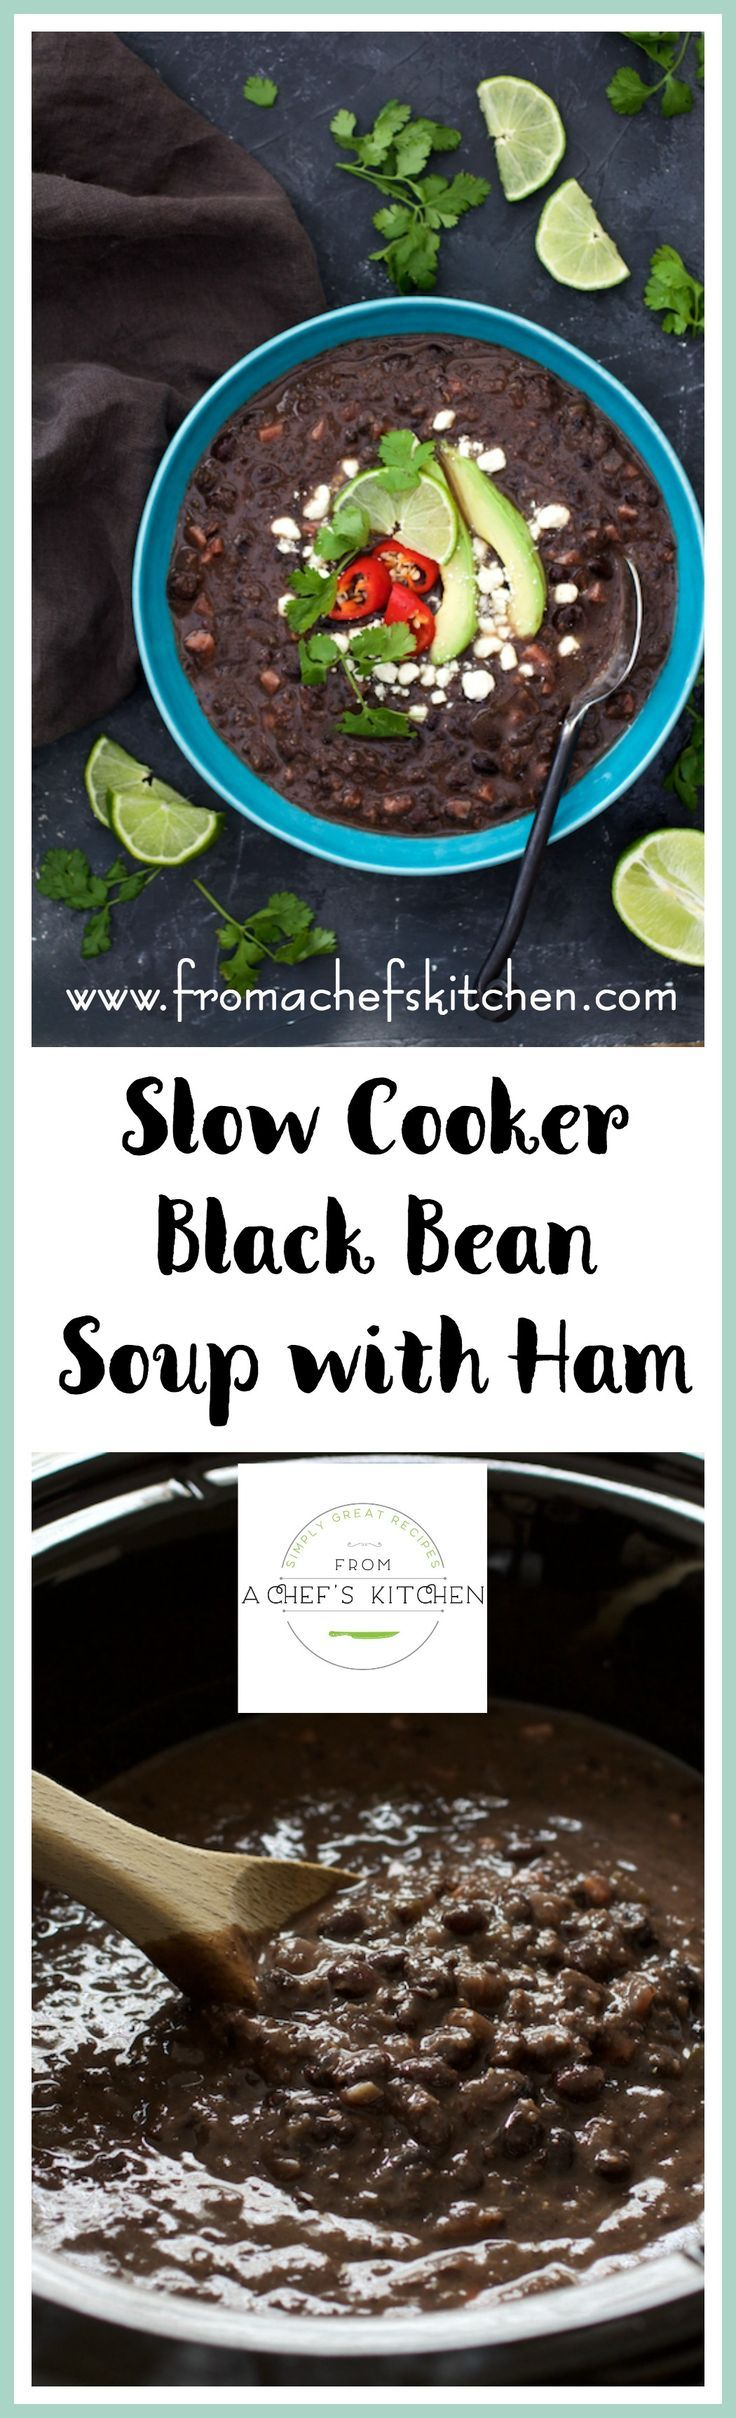 Slow Cooker Black Bean Soup with Ham is the perfect way to make a black bean soup. My tips are guaranteed to get you tender beans every time!